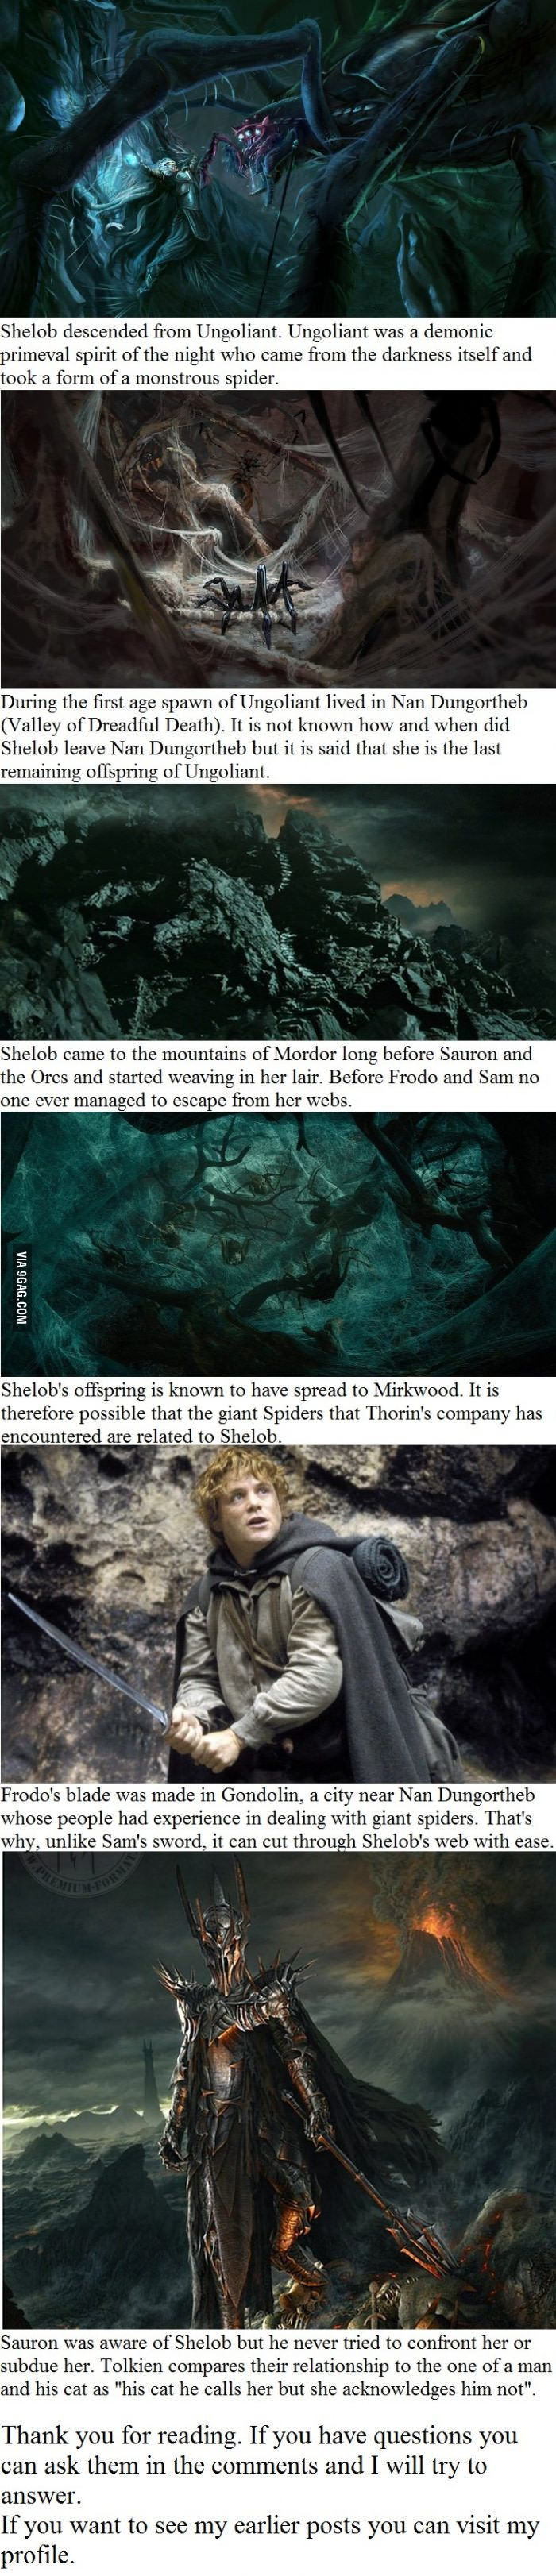 6 Shelob facts you may not have known